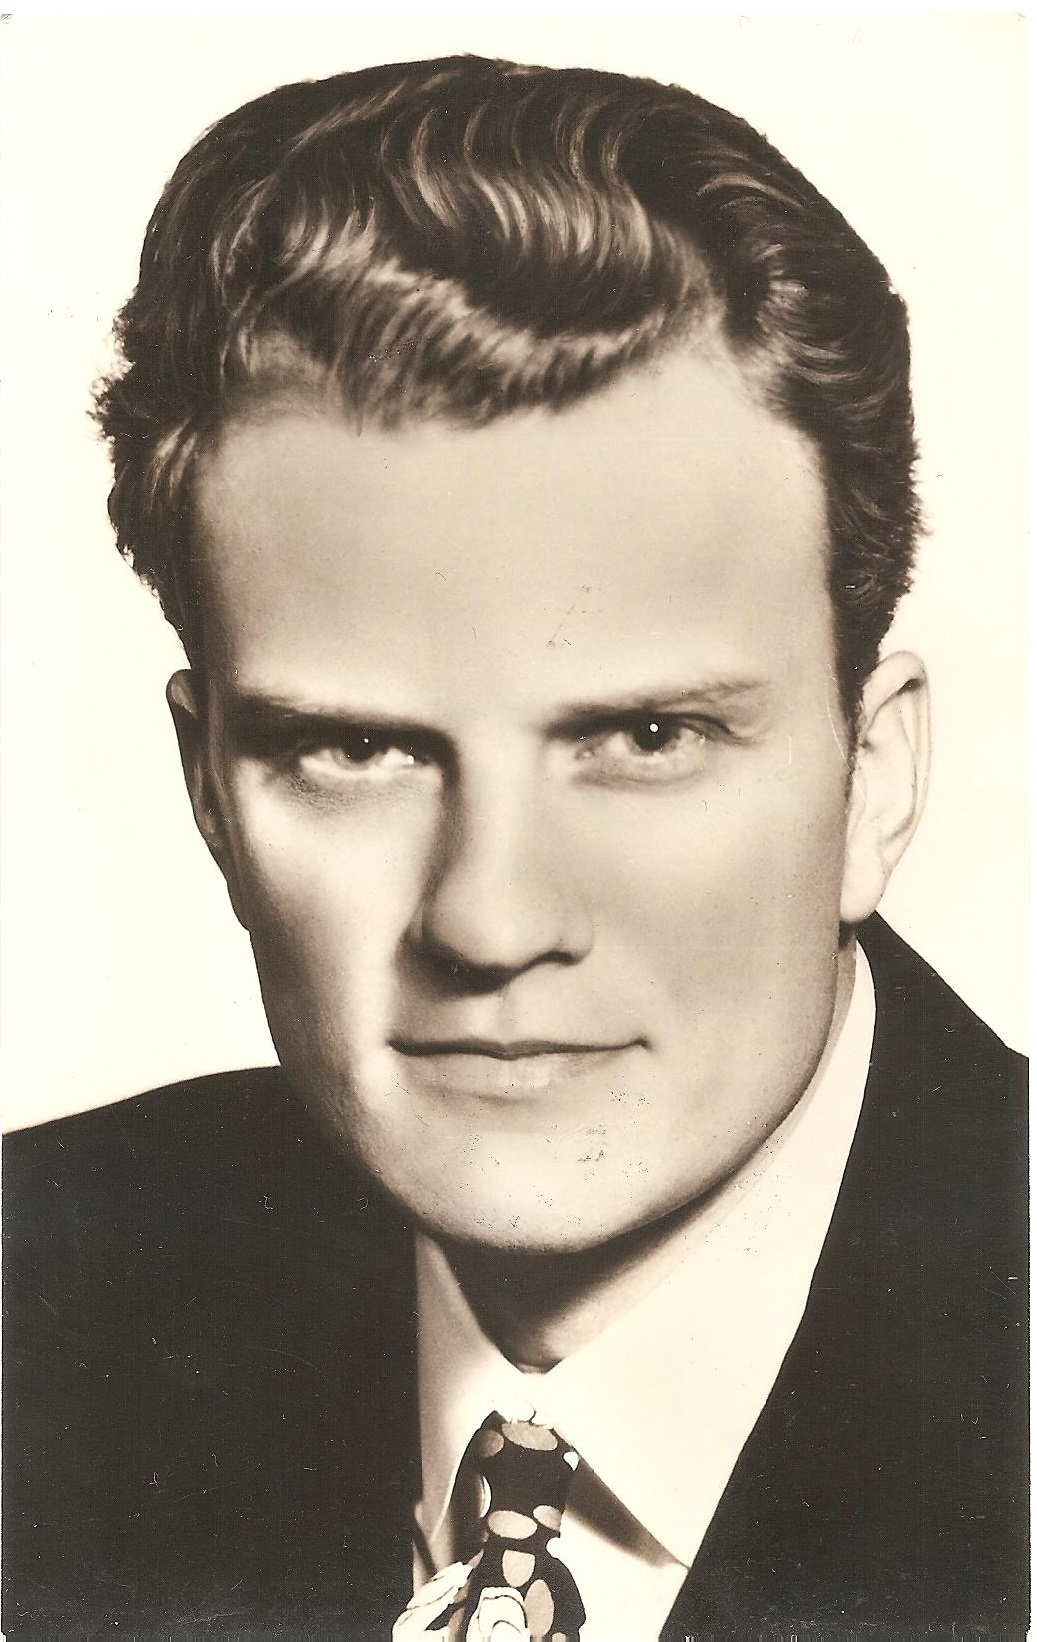 billy graham - photo #22